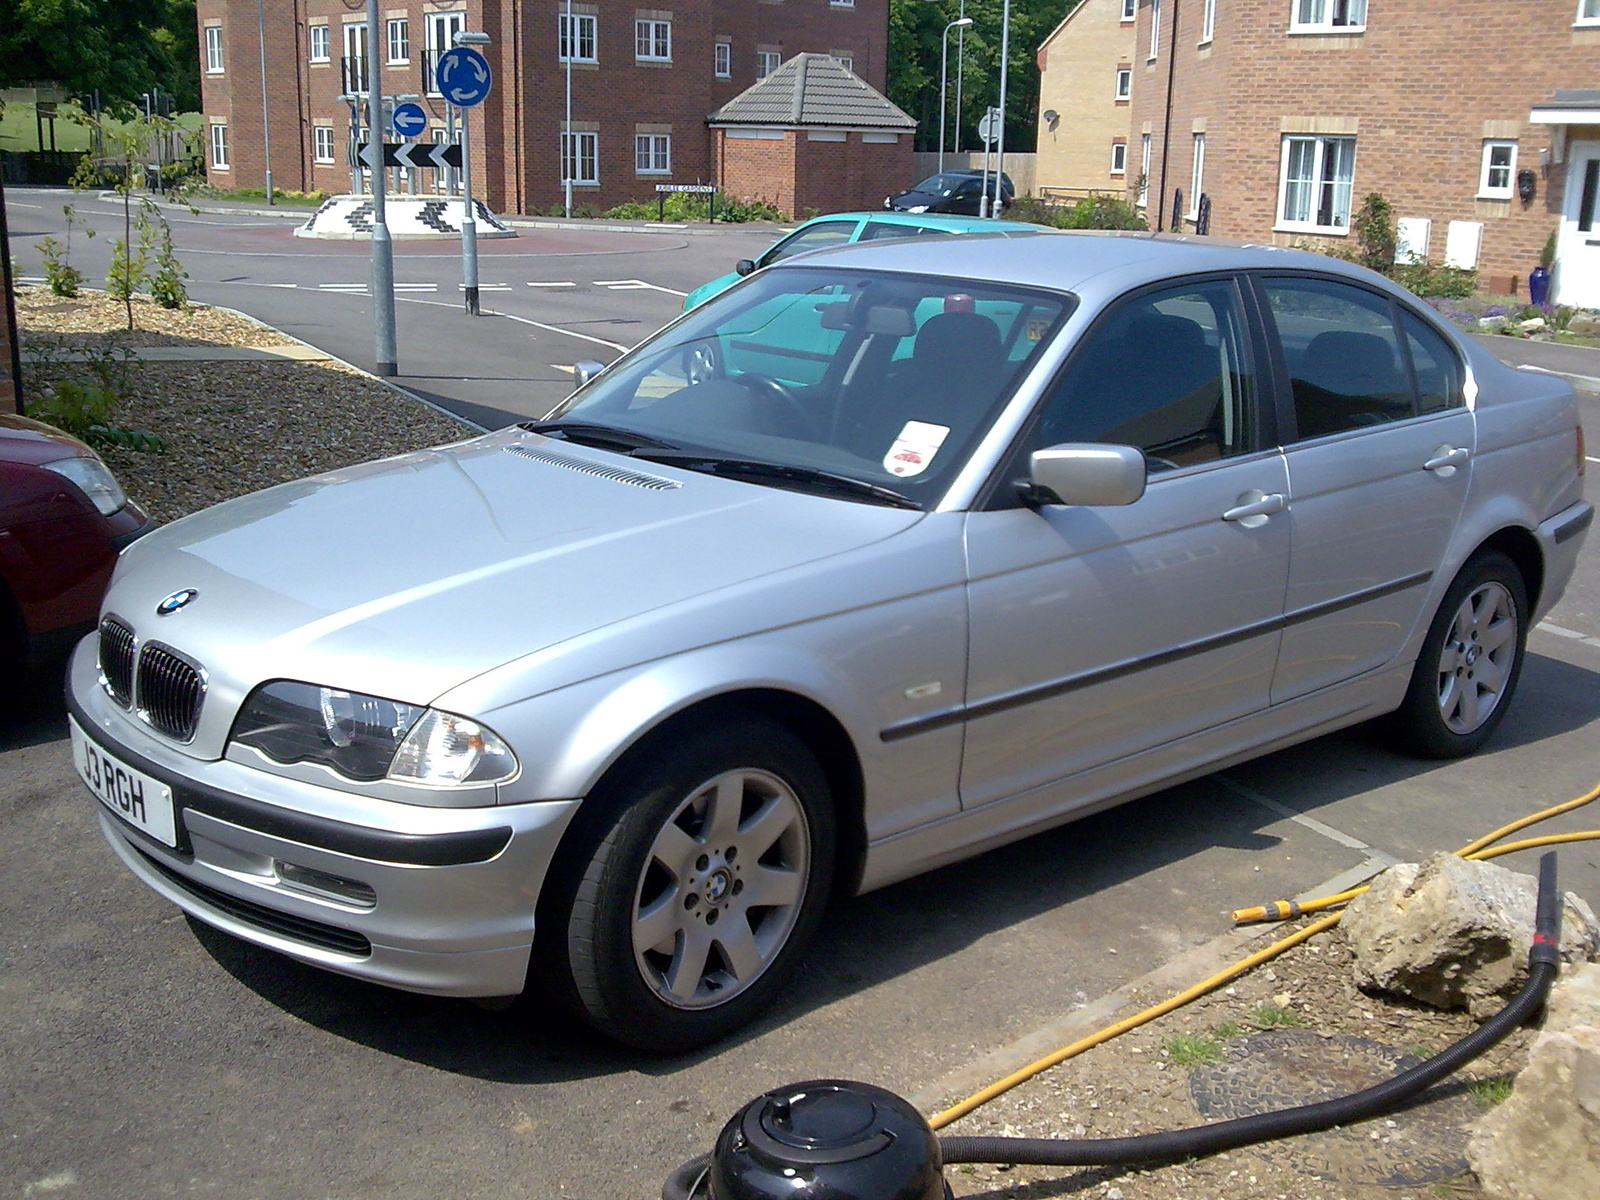 BMW 3 series 325i 2000 photo - 1